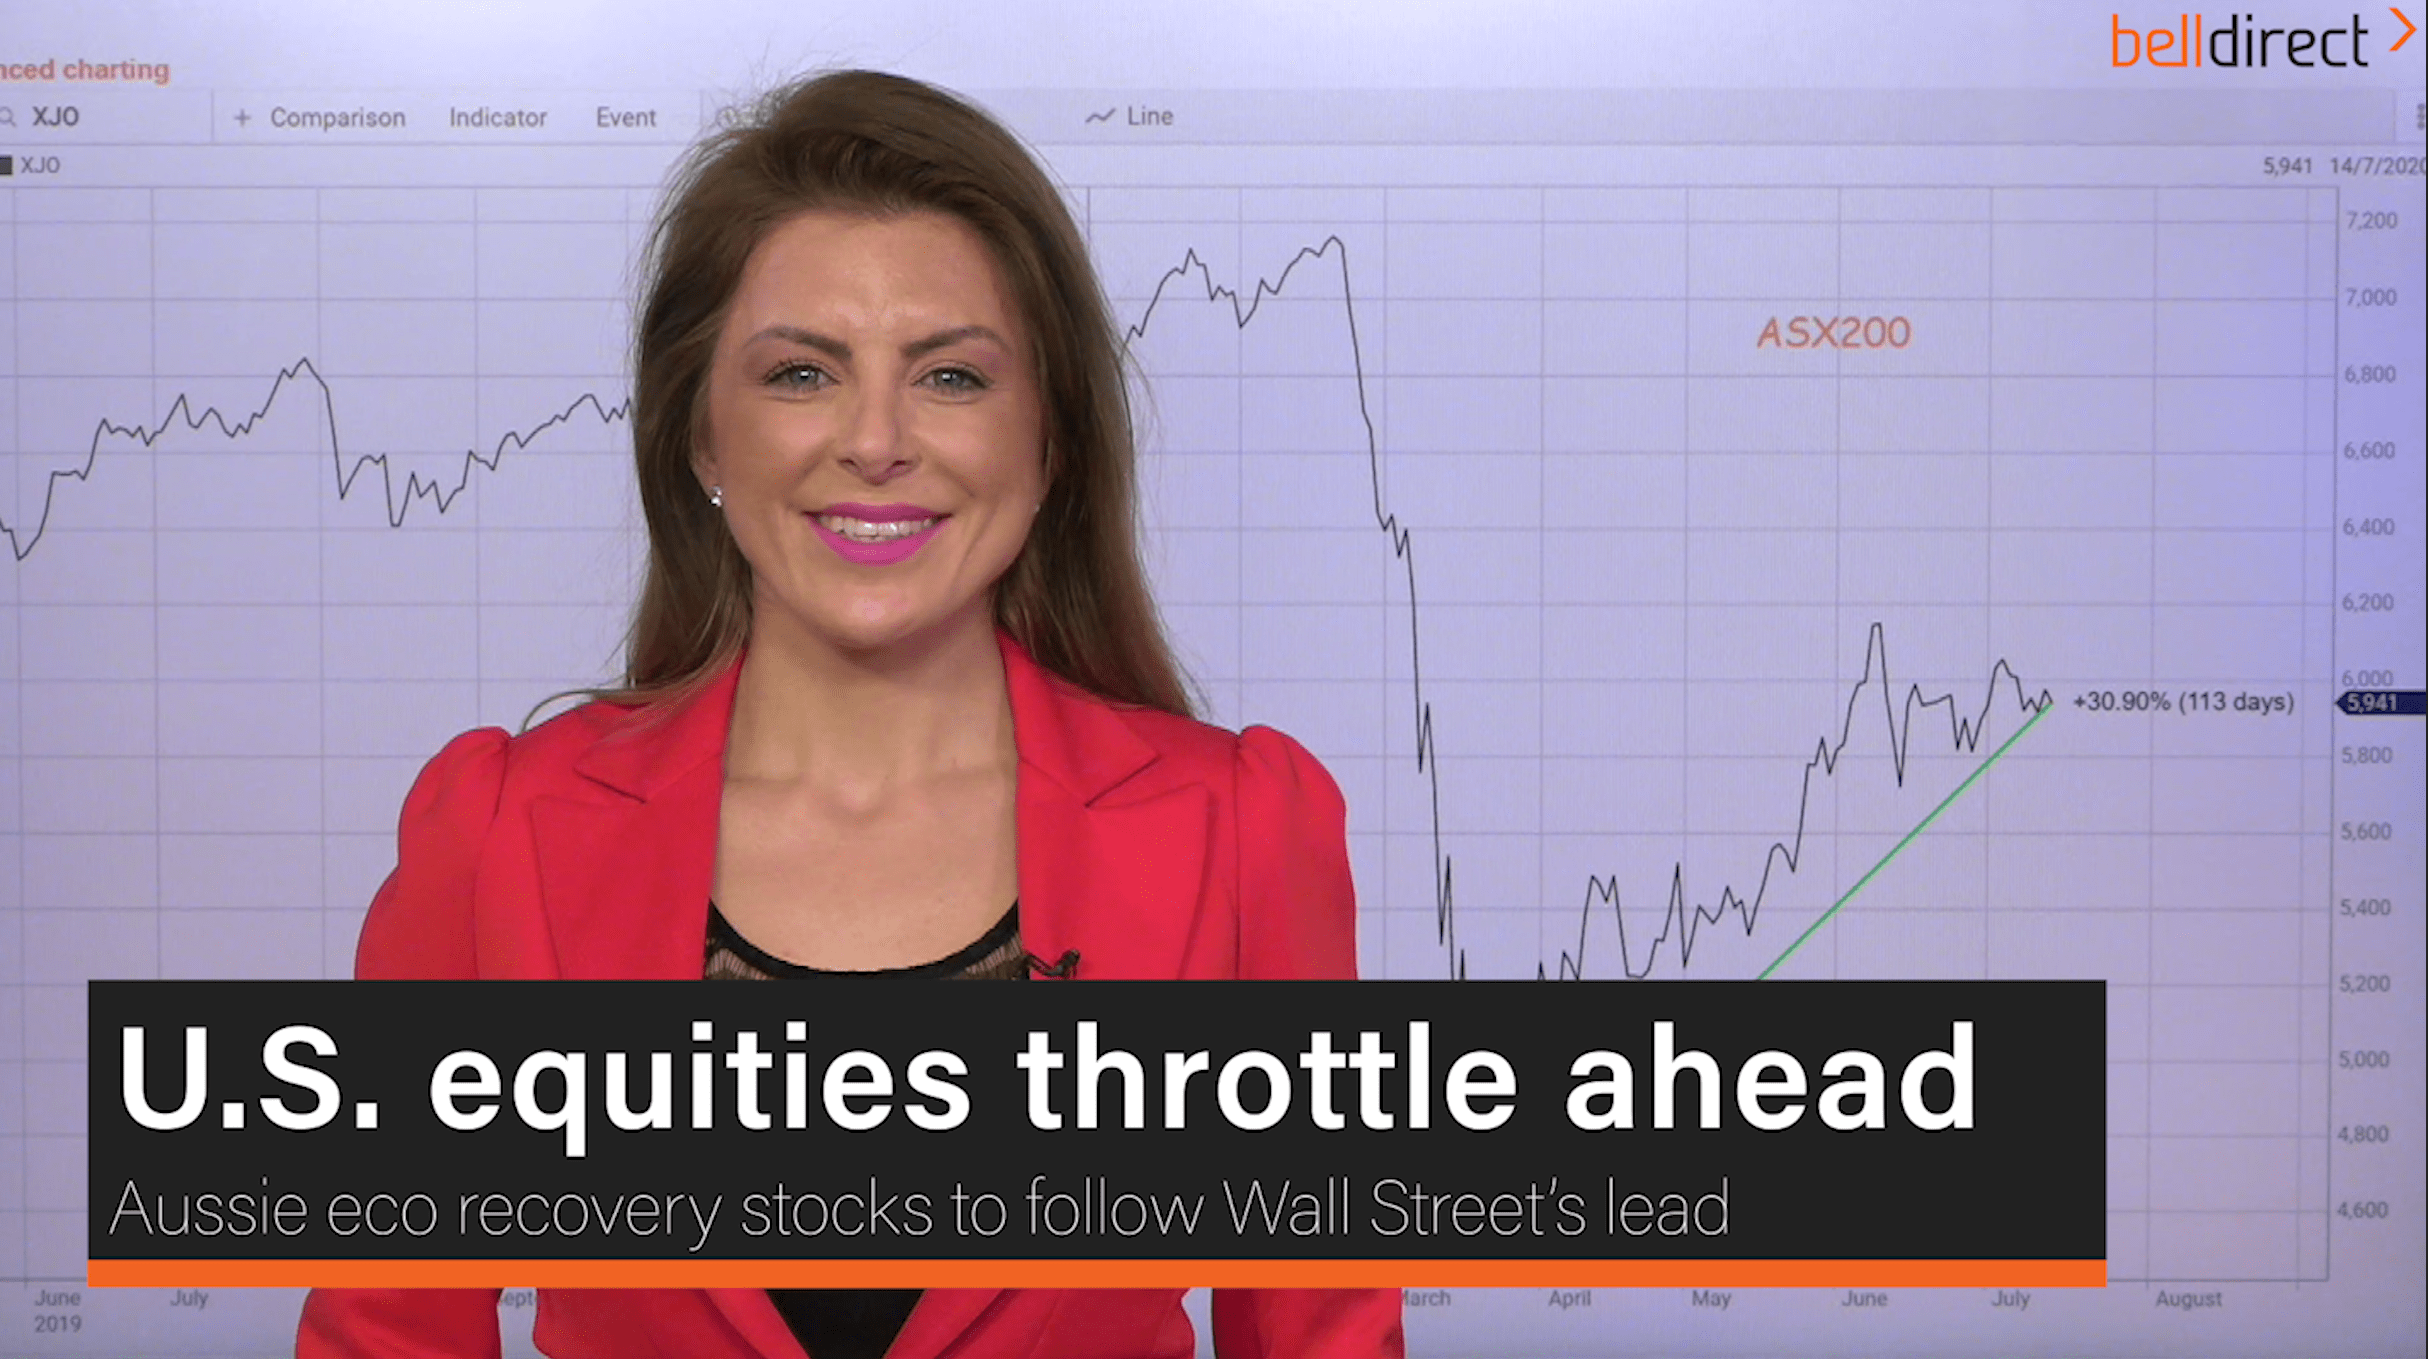 U.S. equities throttle ahead